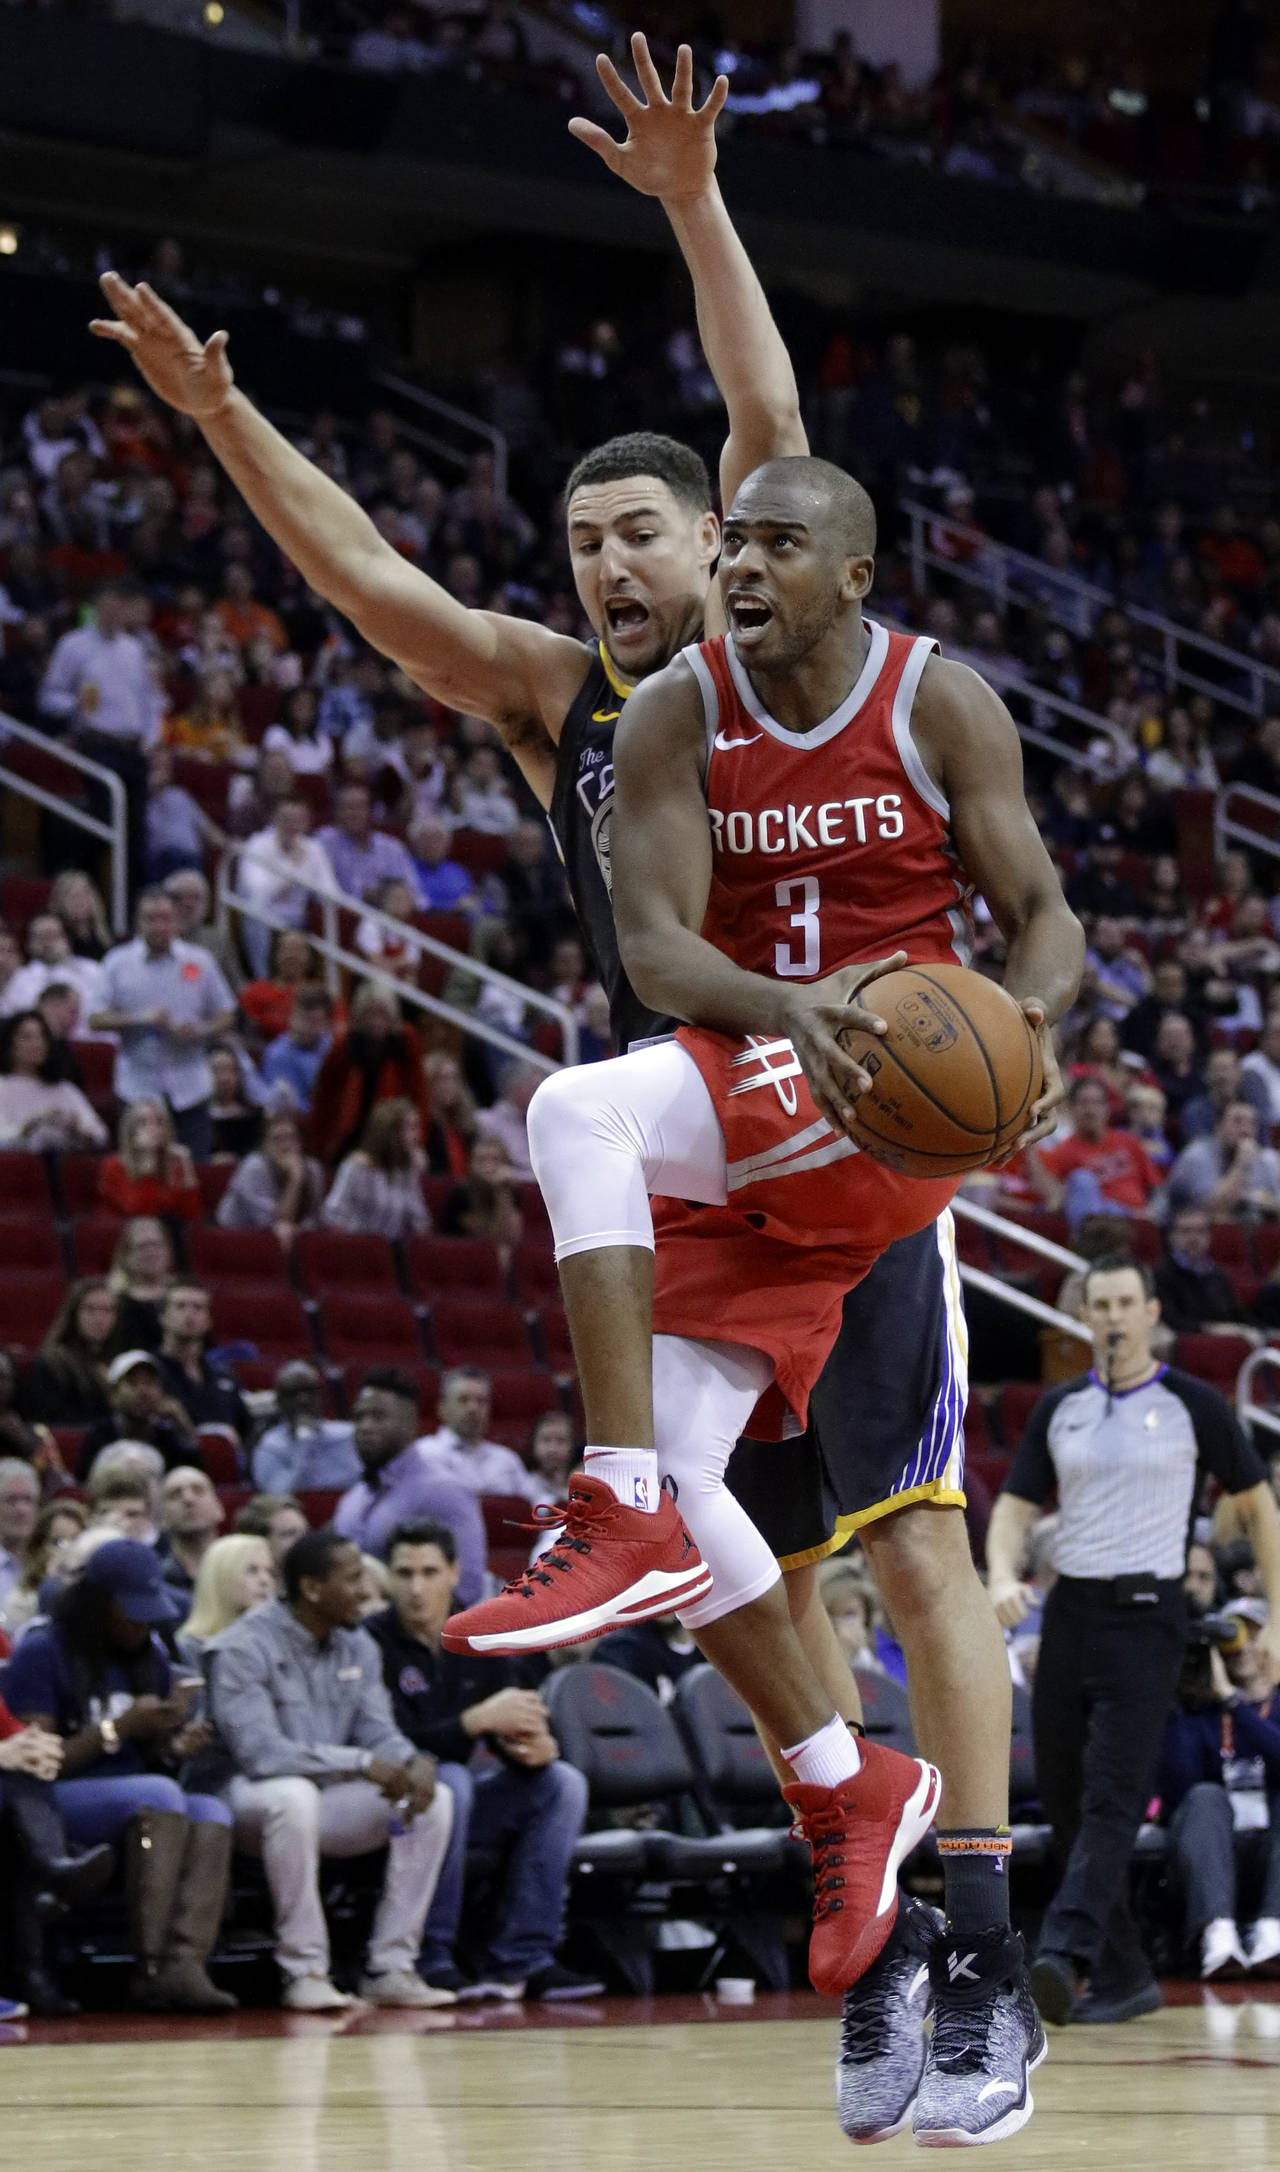 Chris Paul anotó 33 puntos y bajó 11 rebotes ante los Warriors